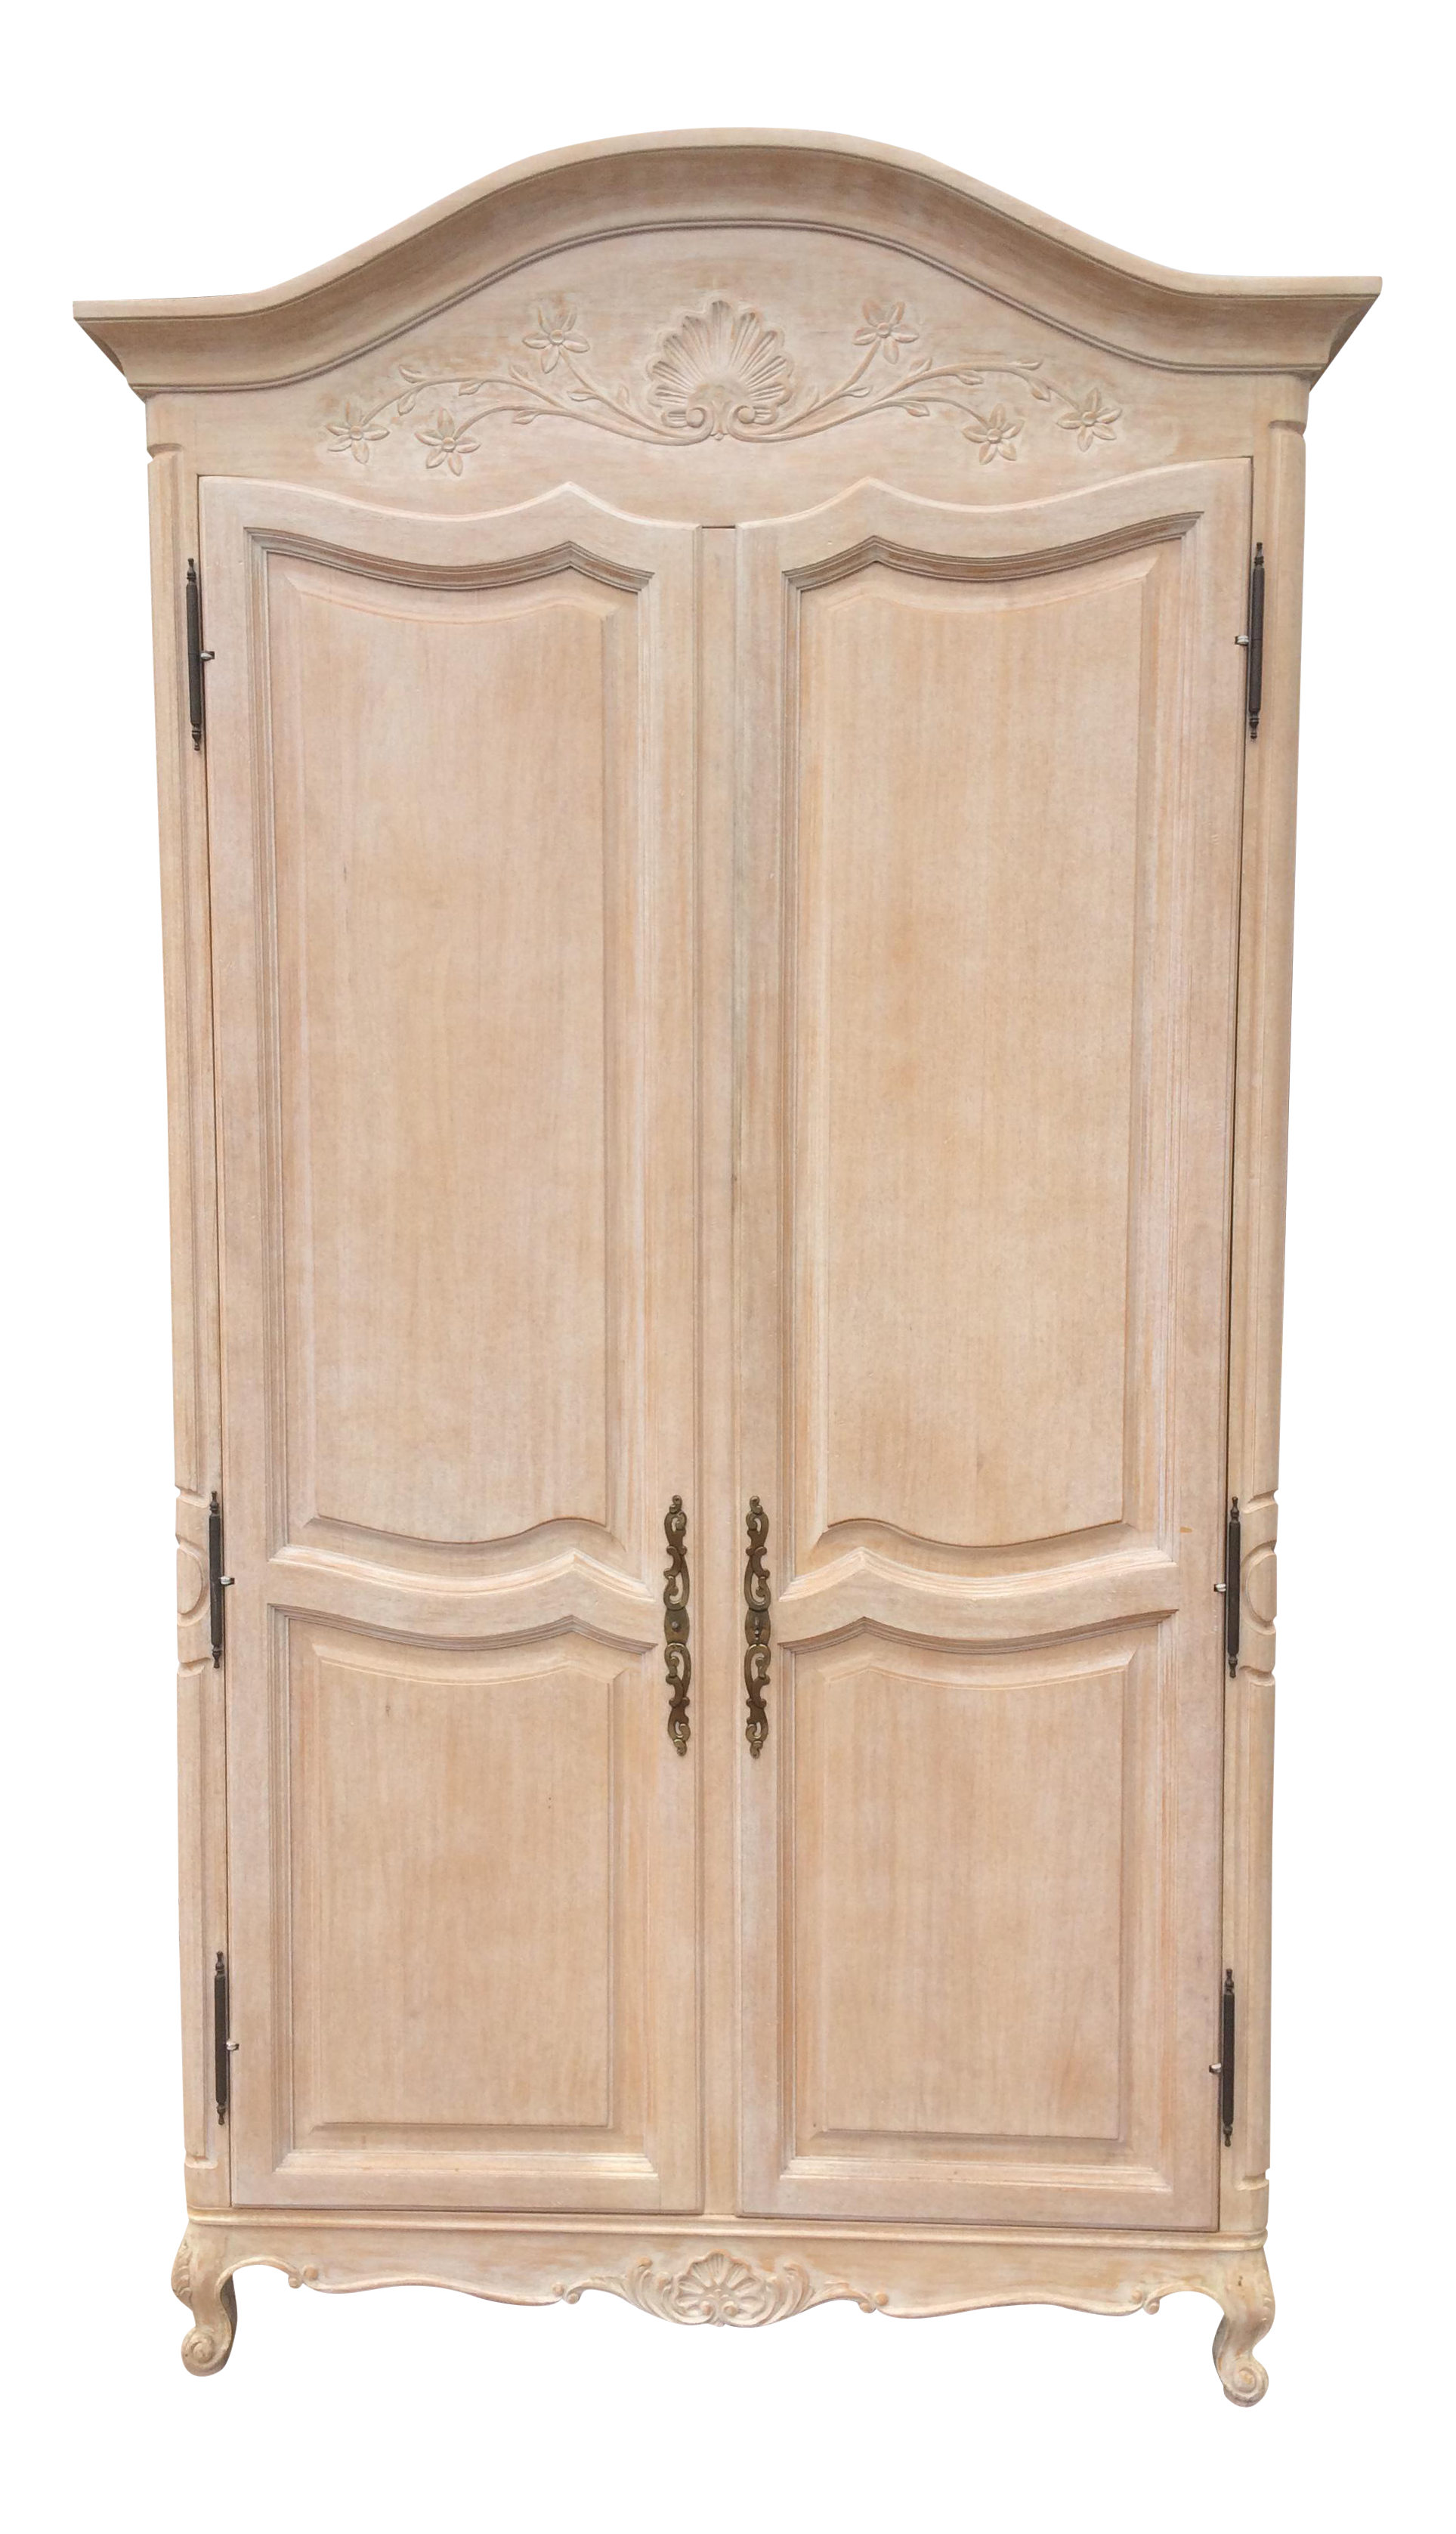 antique furniture armoire. frenchstyle antique armoire furniture n